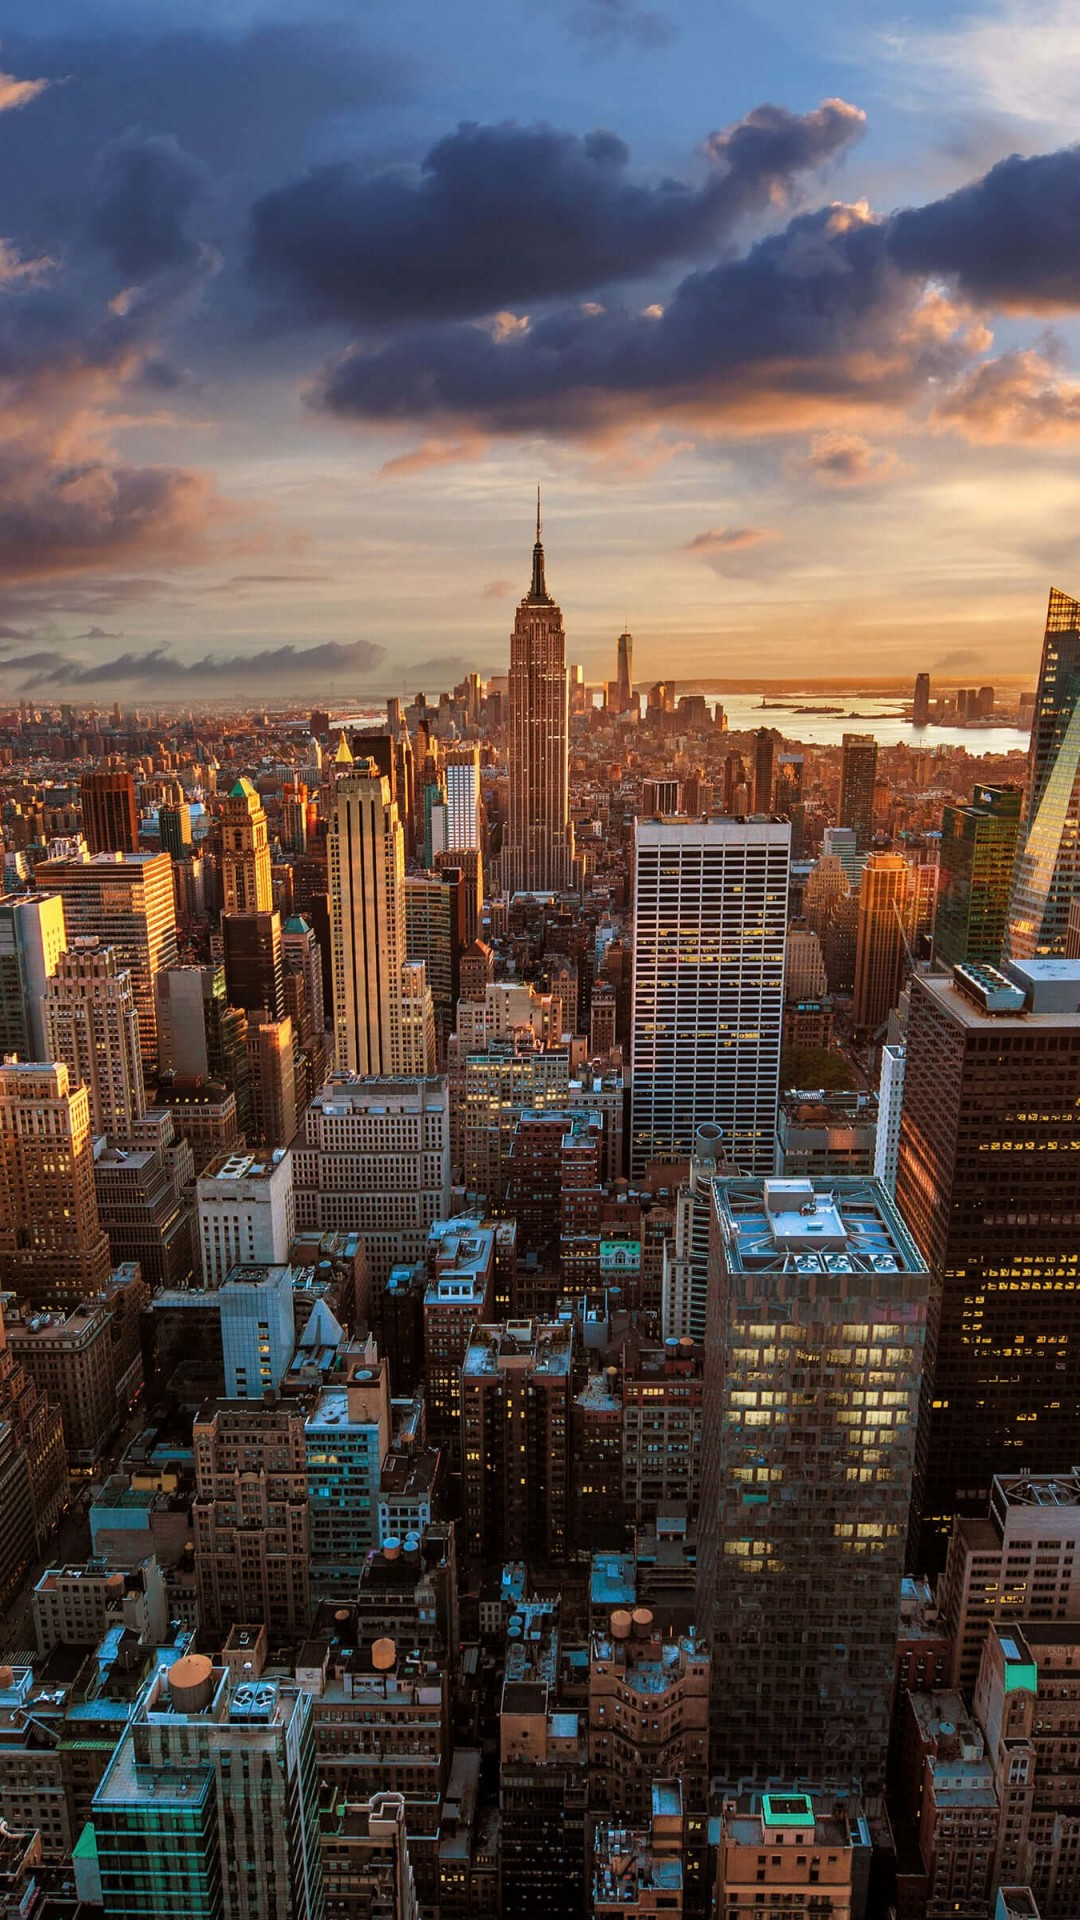 New York City Skyline At Sunset Wallpaper for SONY Xperia Z2